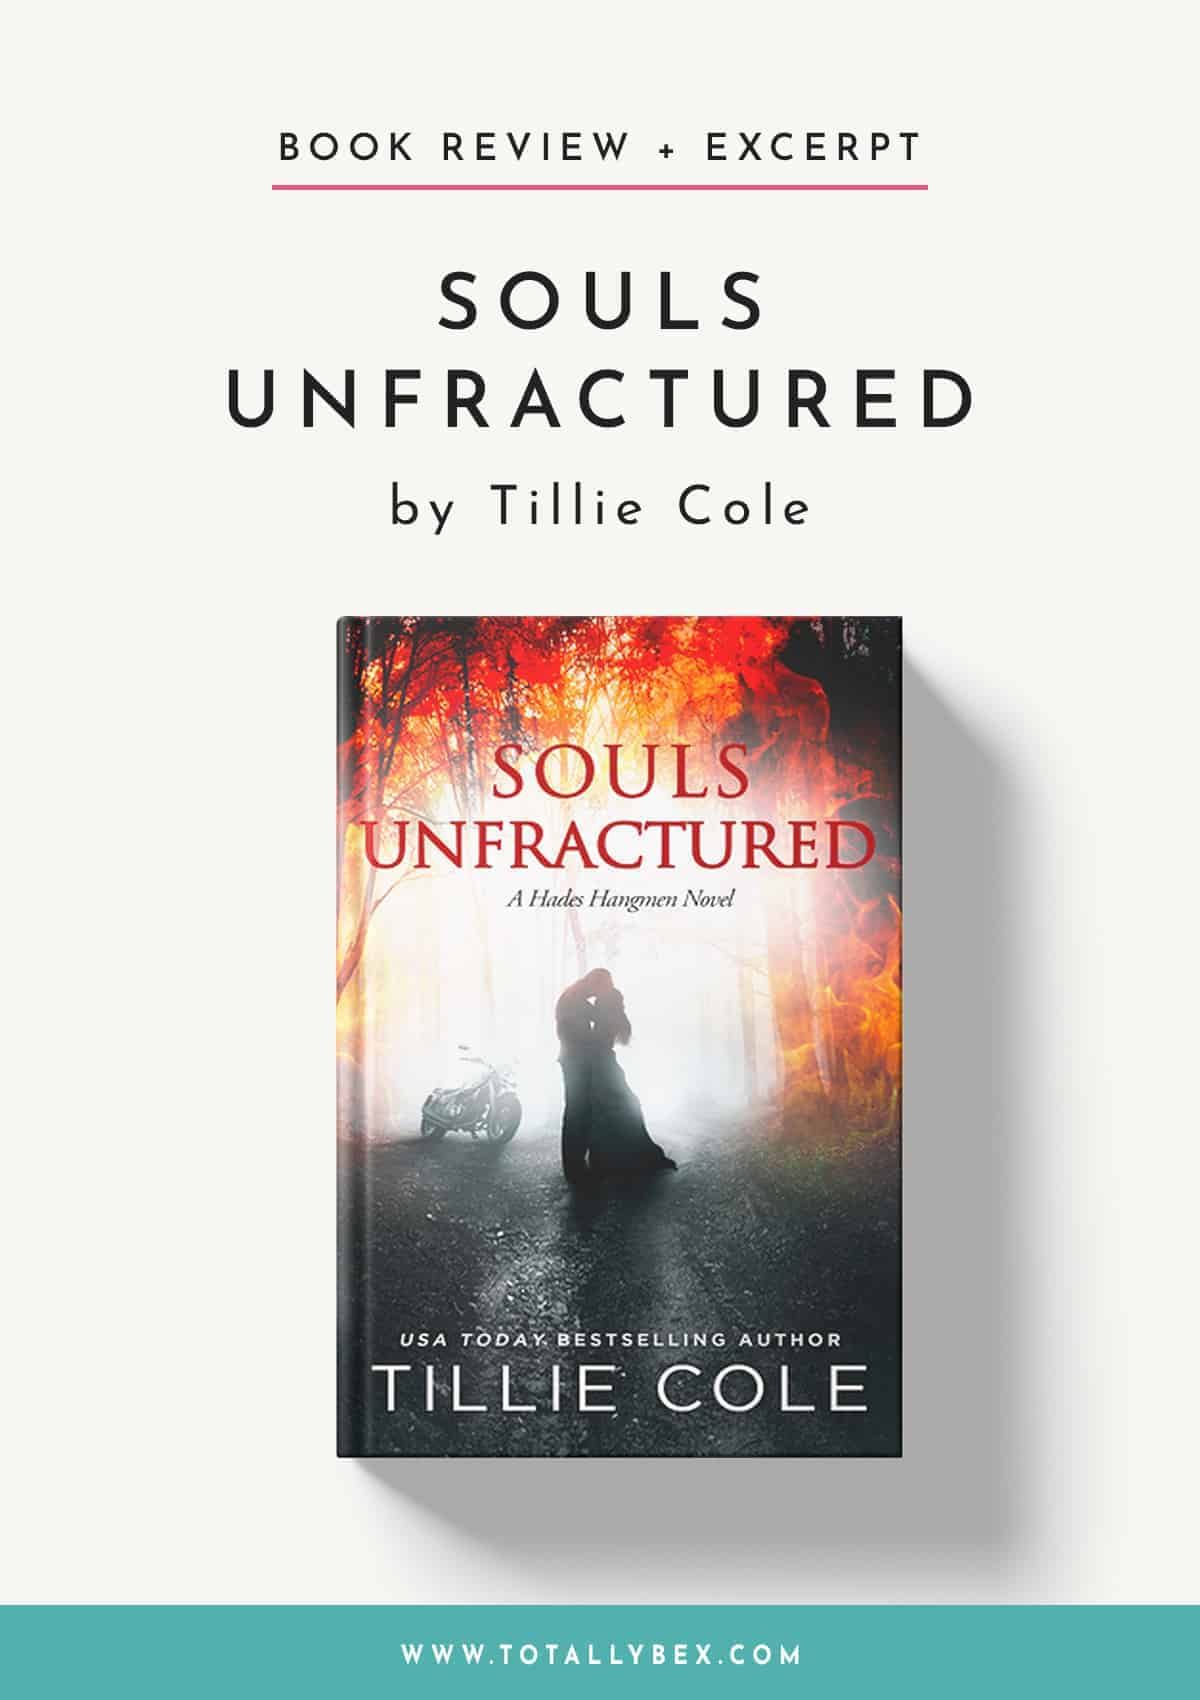 Souls Unfractured by Tillie Cole-Book Review+Excerpt